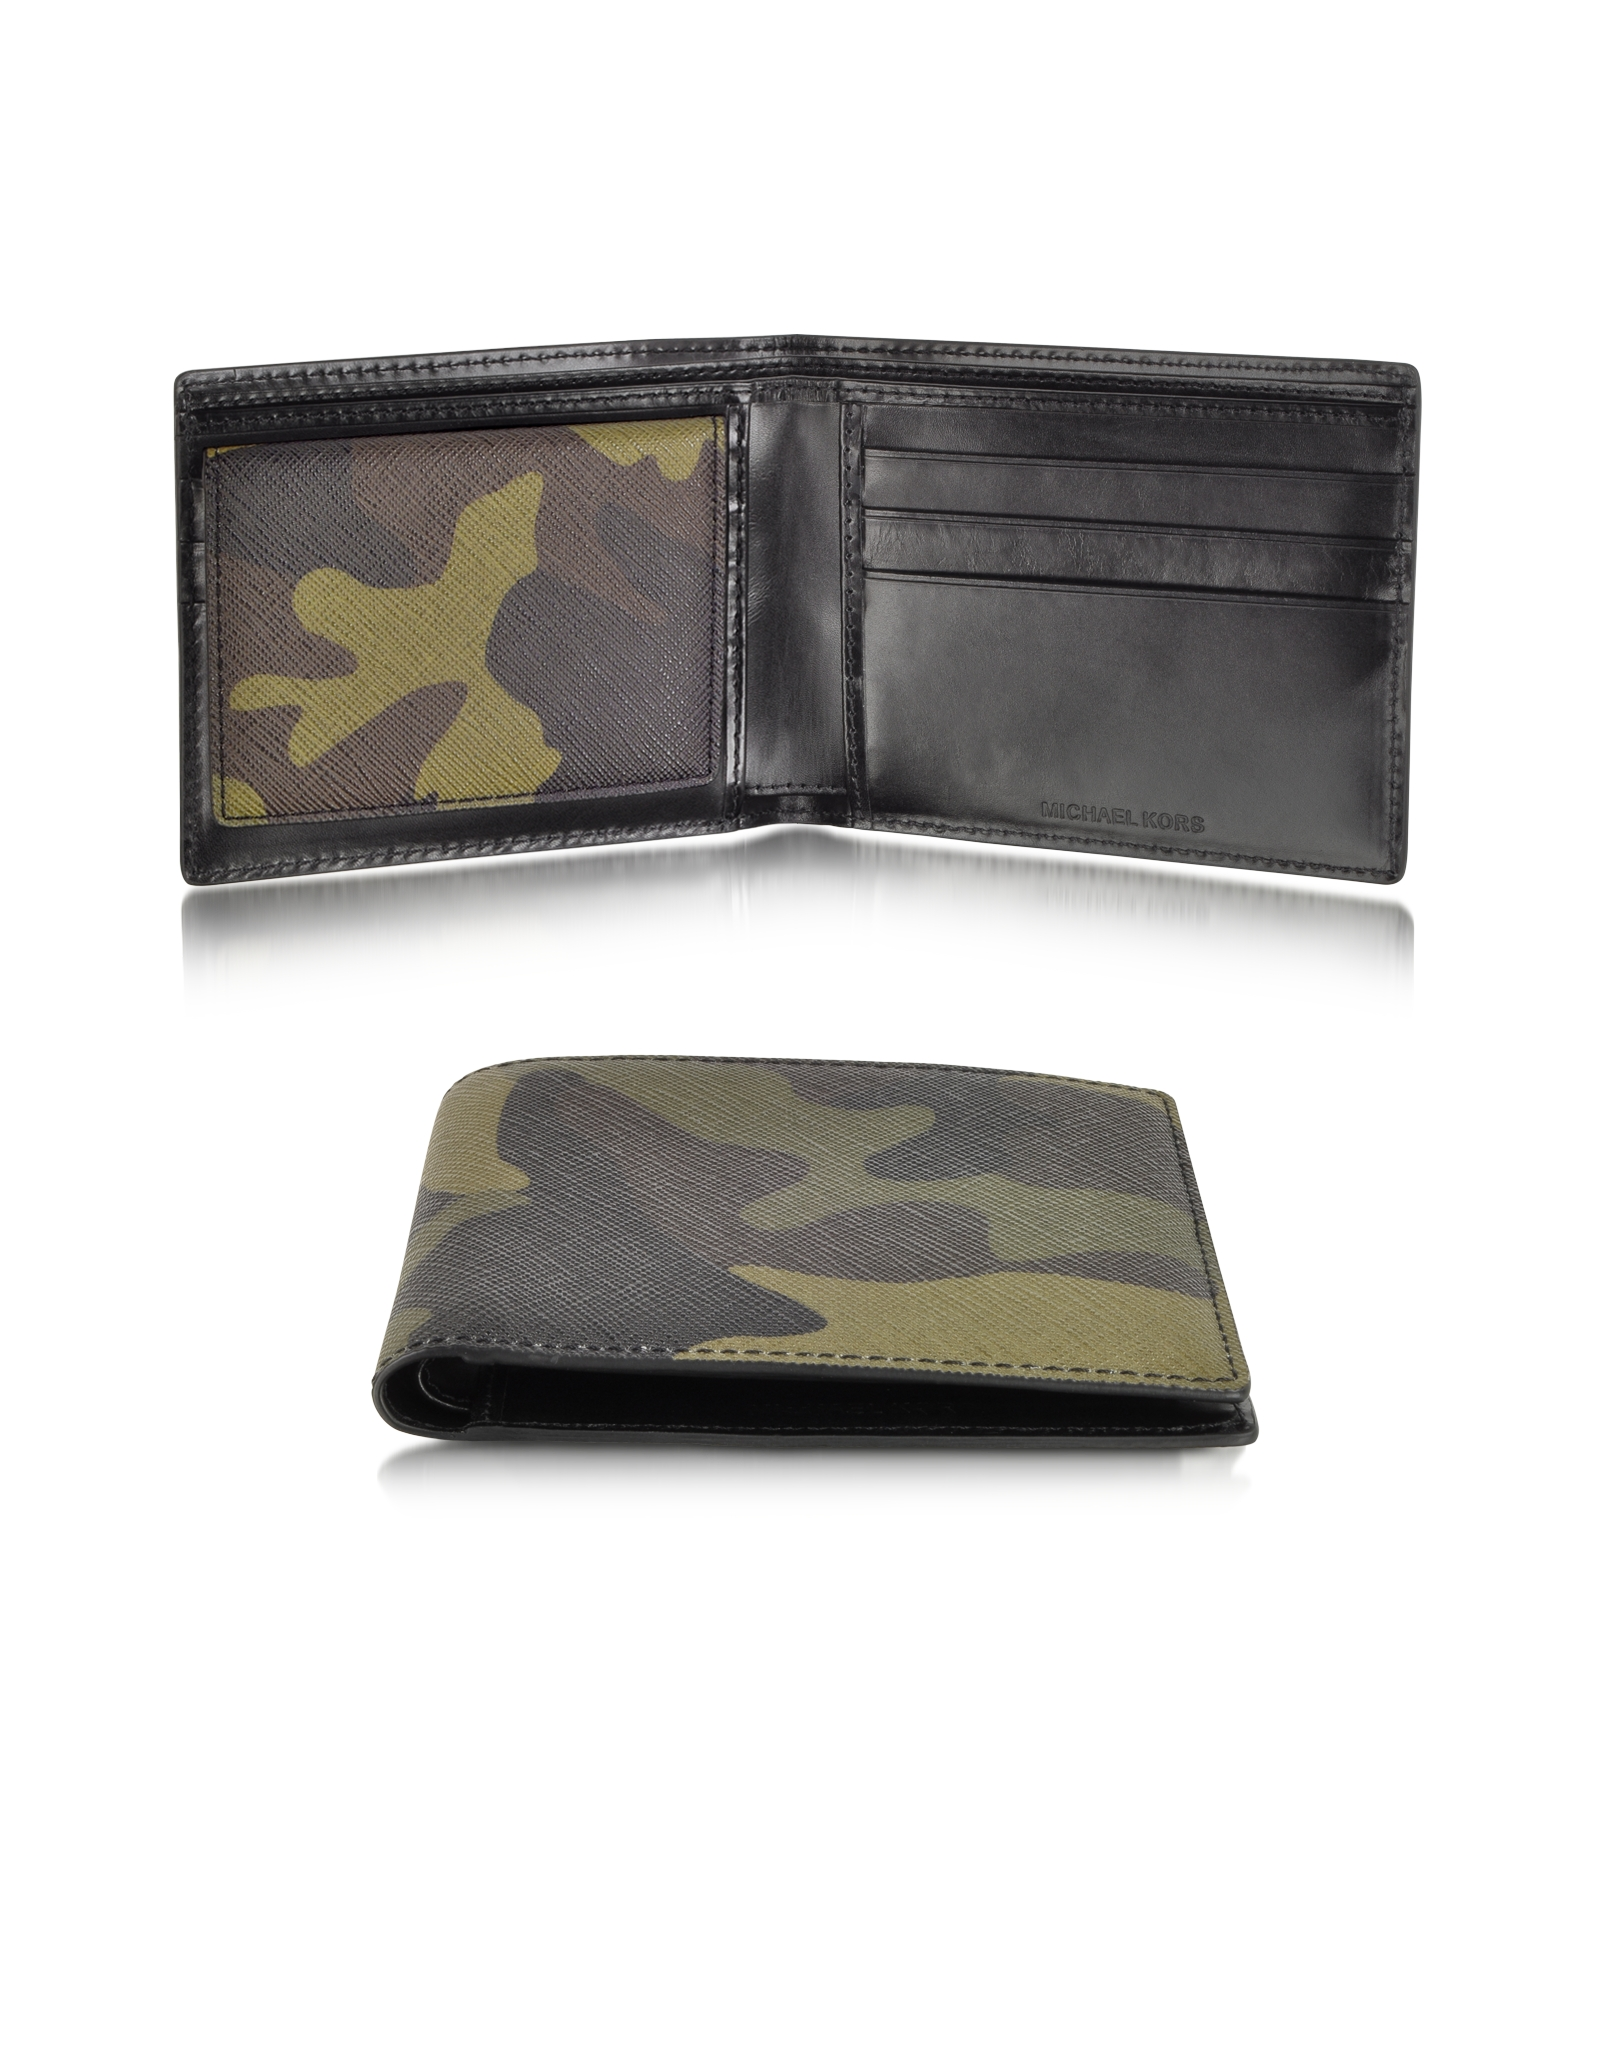 6154dcbf2320 ... low price lyst michael kors leather bifold wallet in green for men  8c3d8 8a529